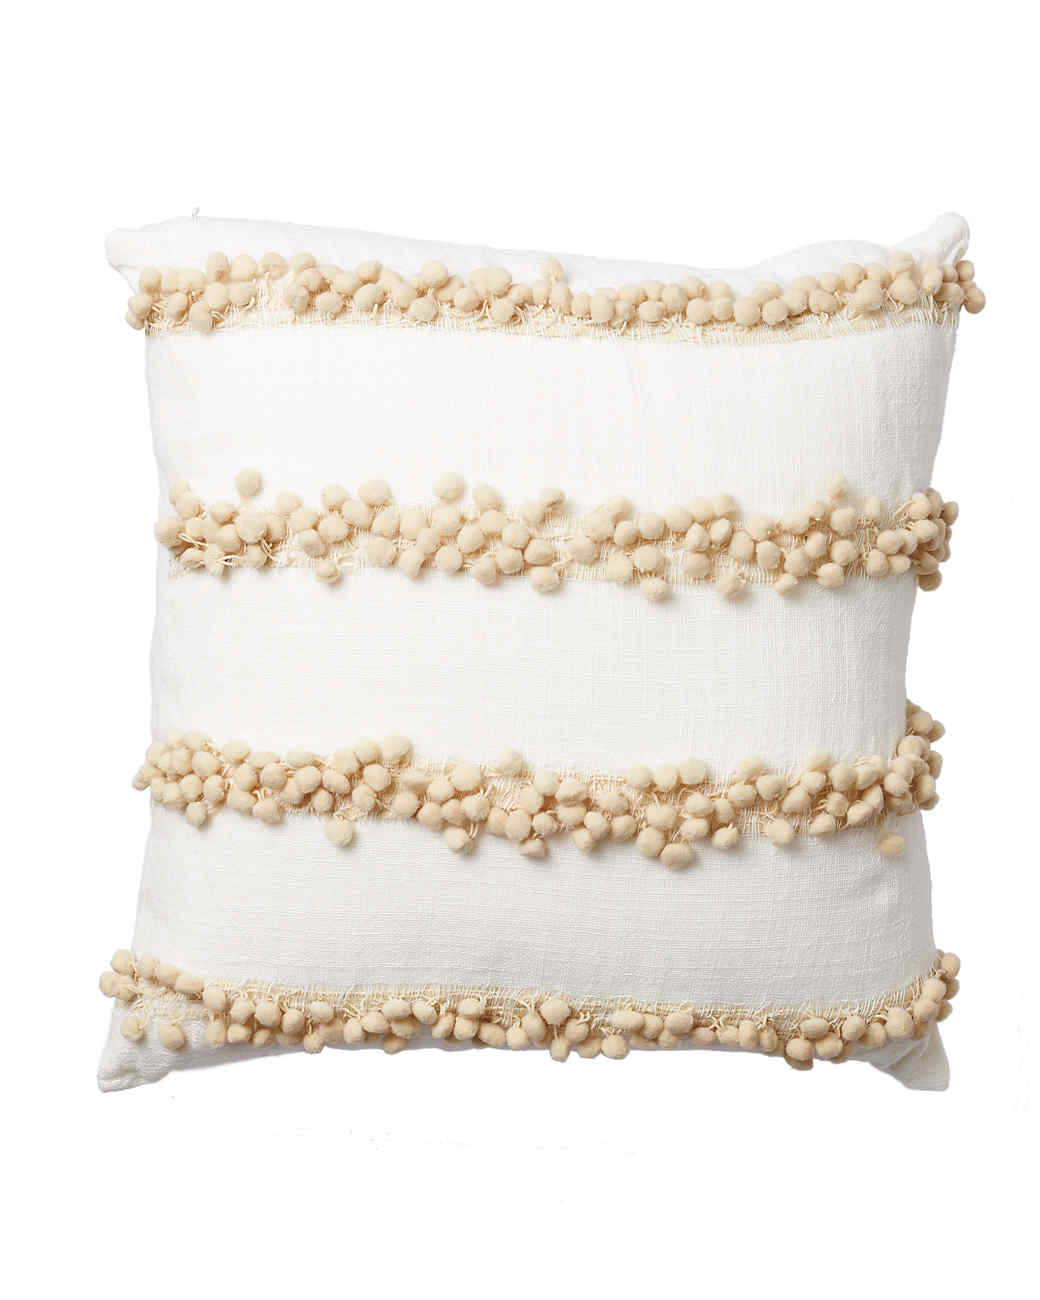 anthropologie-pillow-056-d111219.jpg